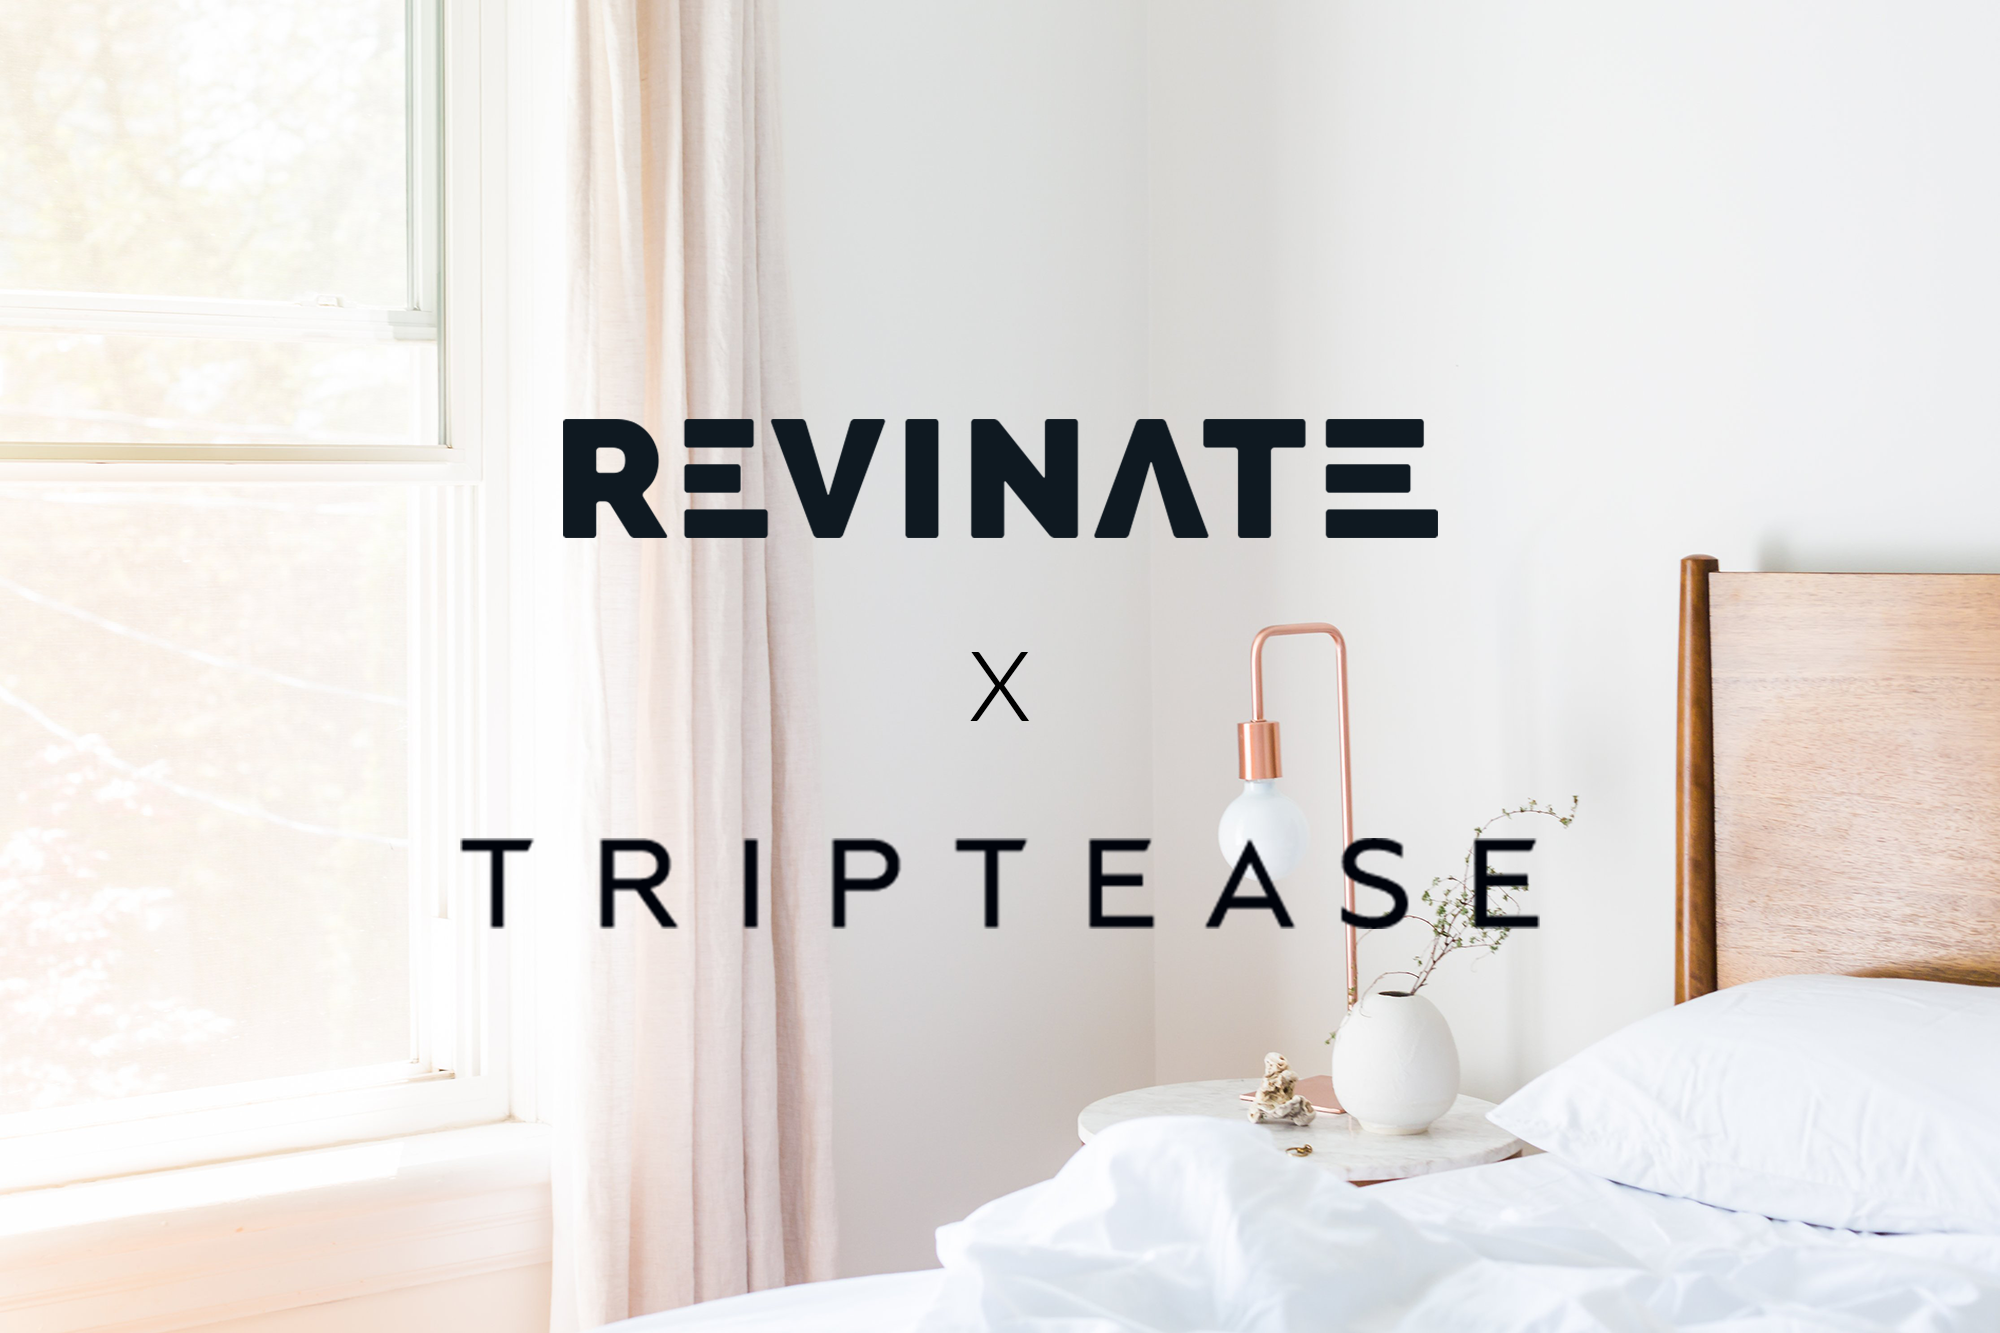 Revinate partners with Triptease on CRM: A Hotelier's Guide